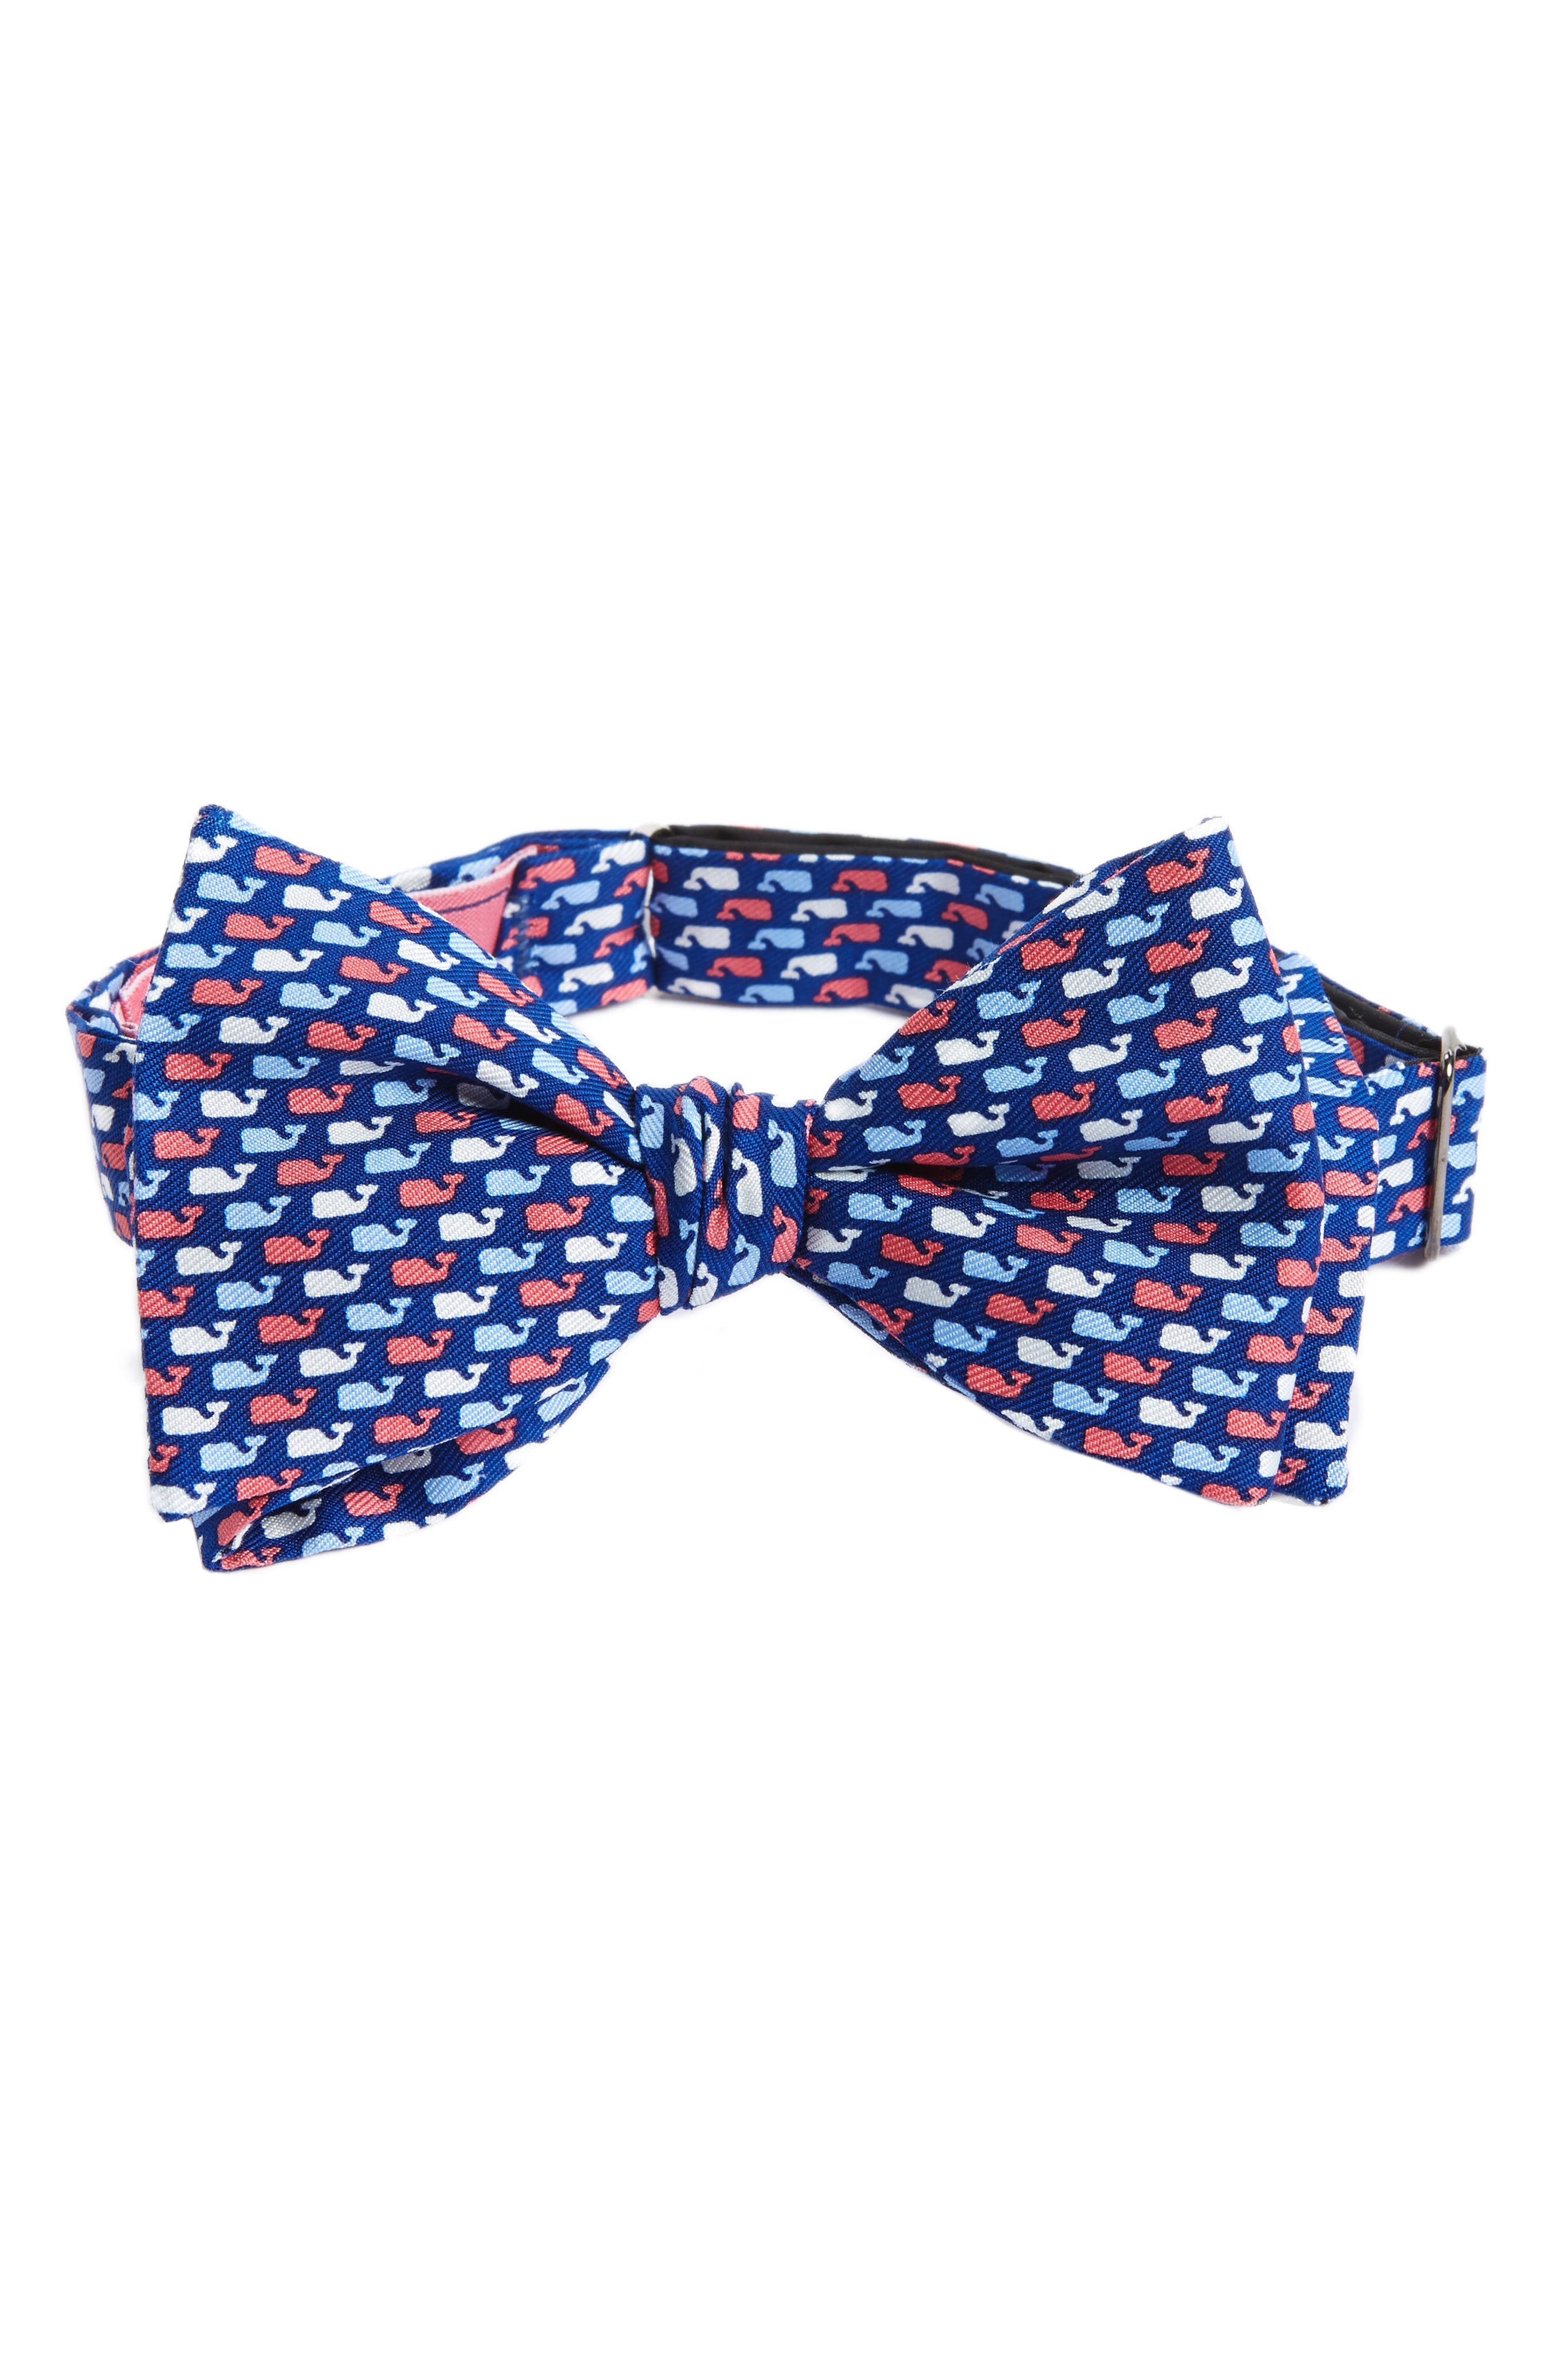 Vineyard Vines Red White & Whale Silk Bow Tie